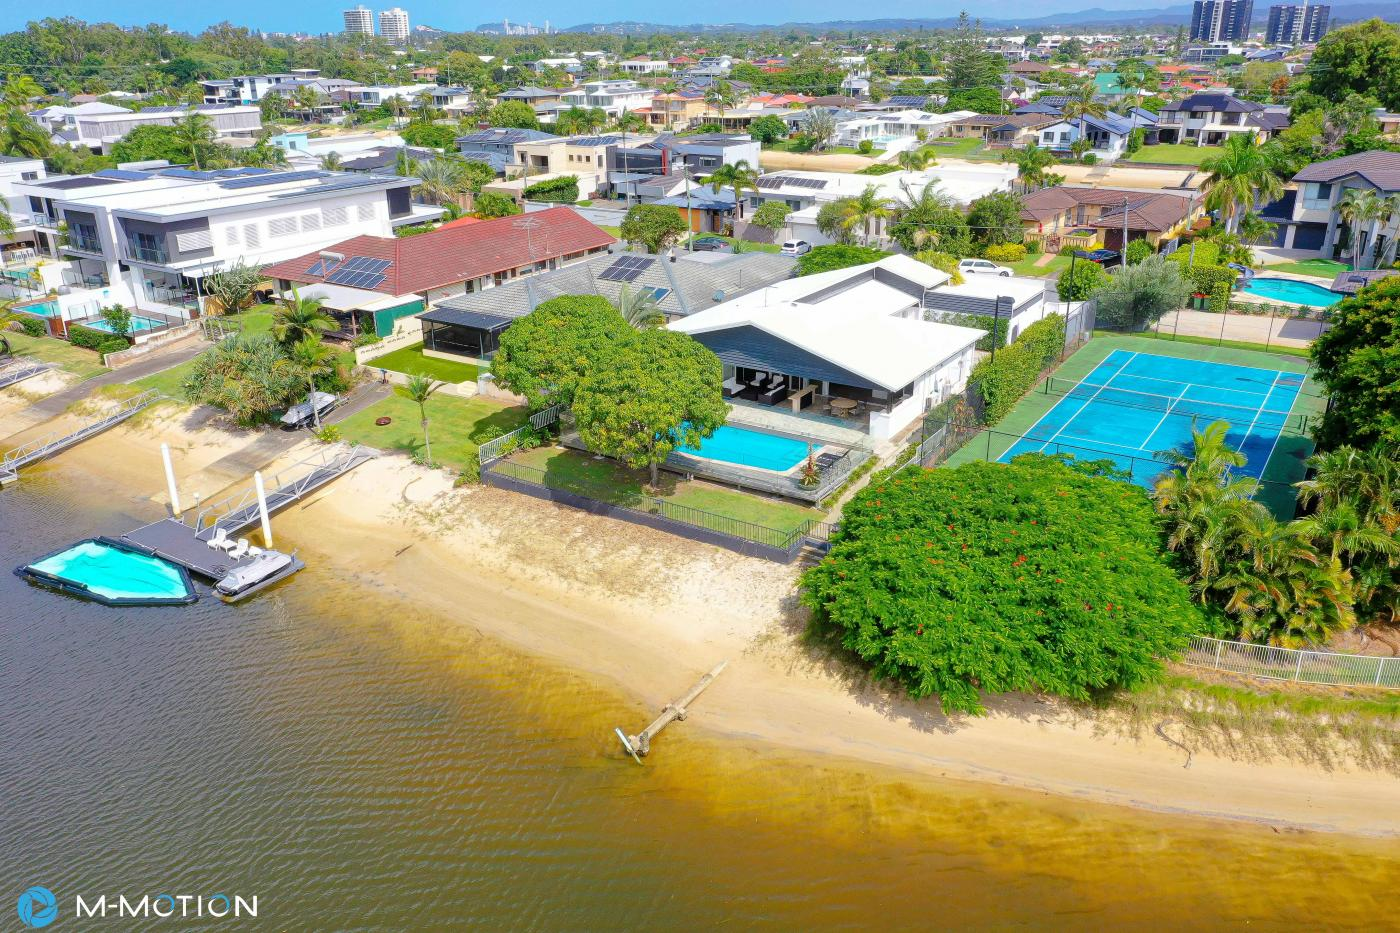 39 Park Avenue Broadbeach Waters 4228 M-Motion Real Estate James Ford